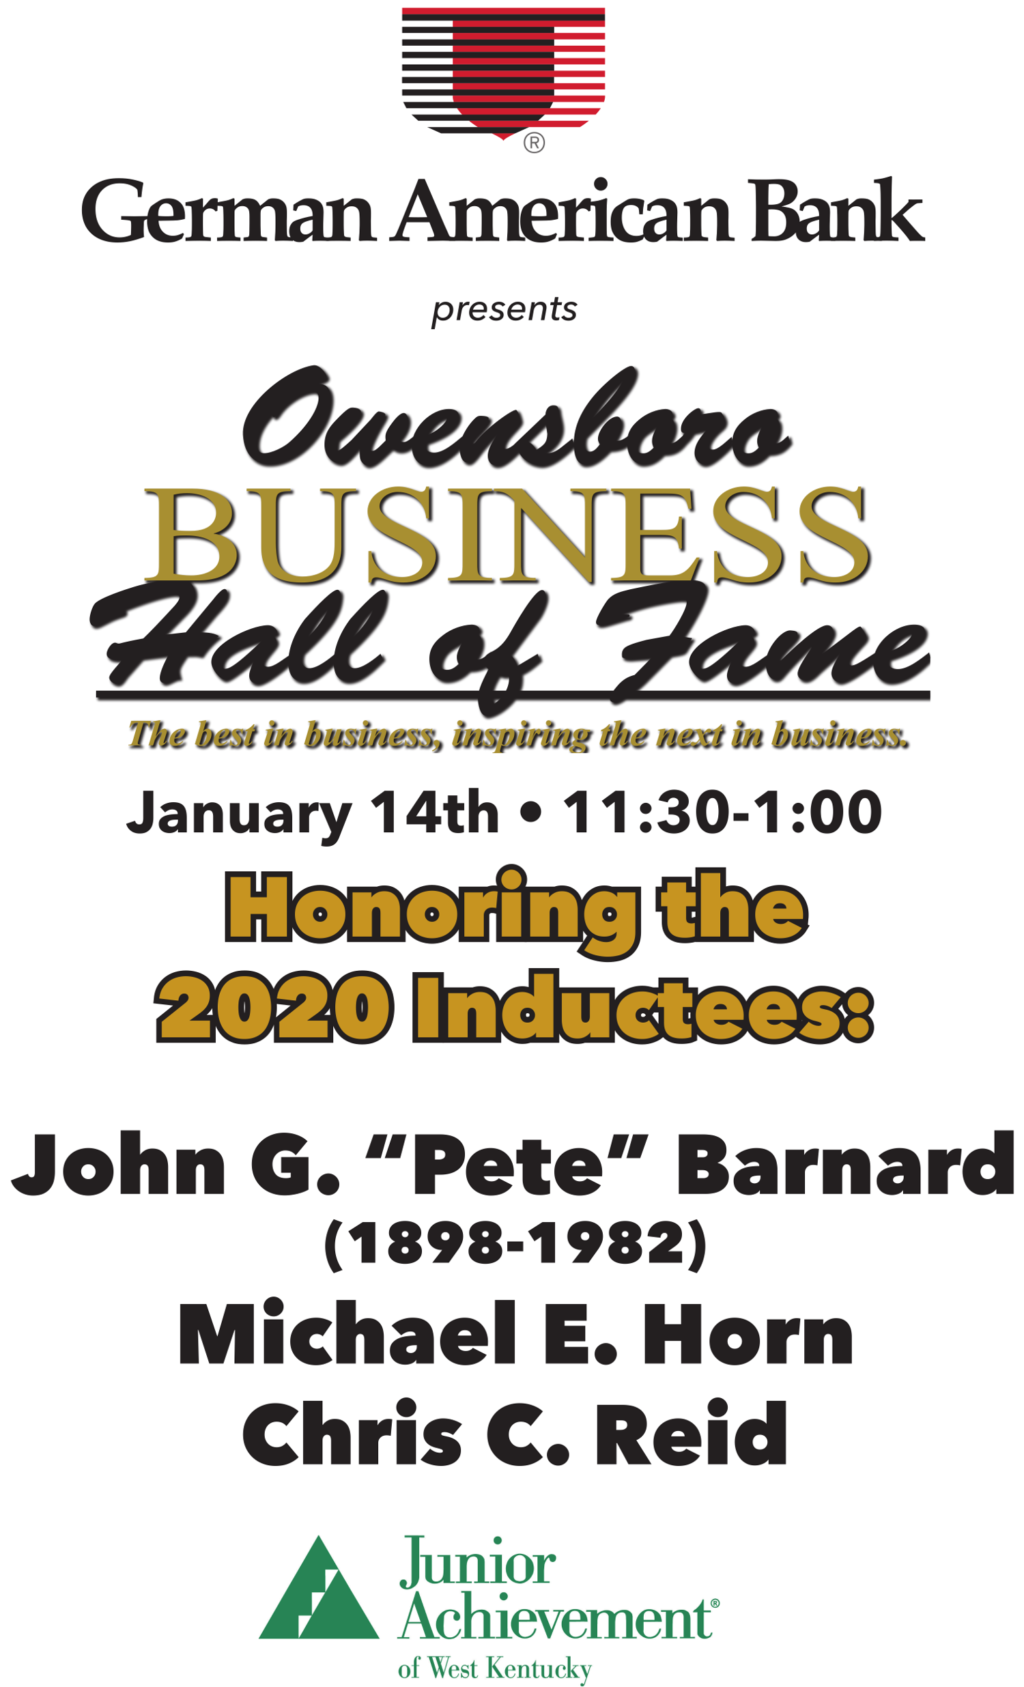 German American Bank presents the Owensboro Business Hall of Fame